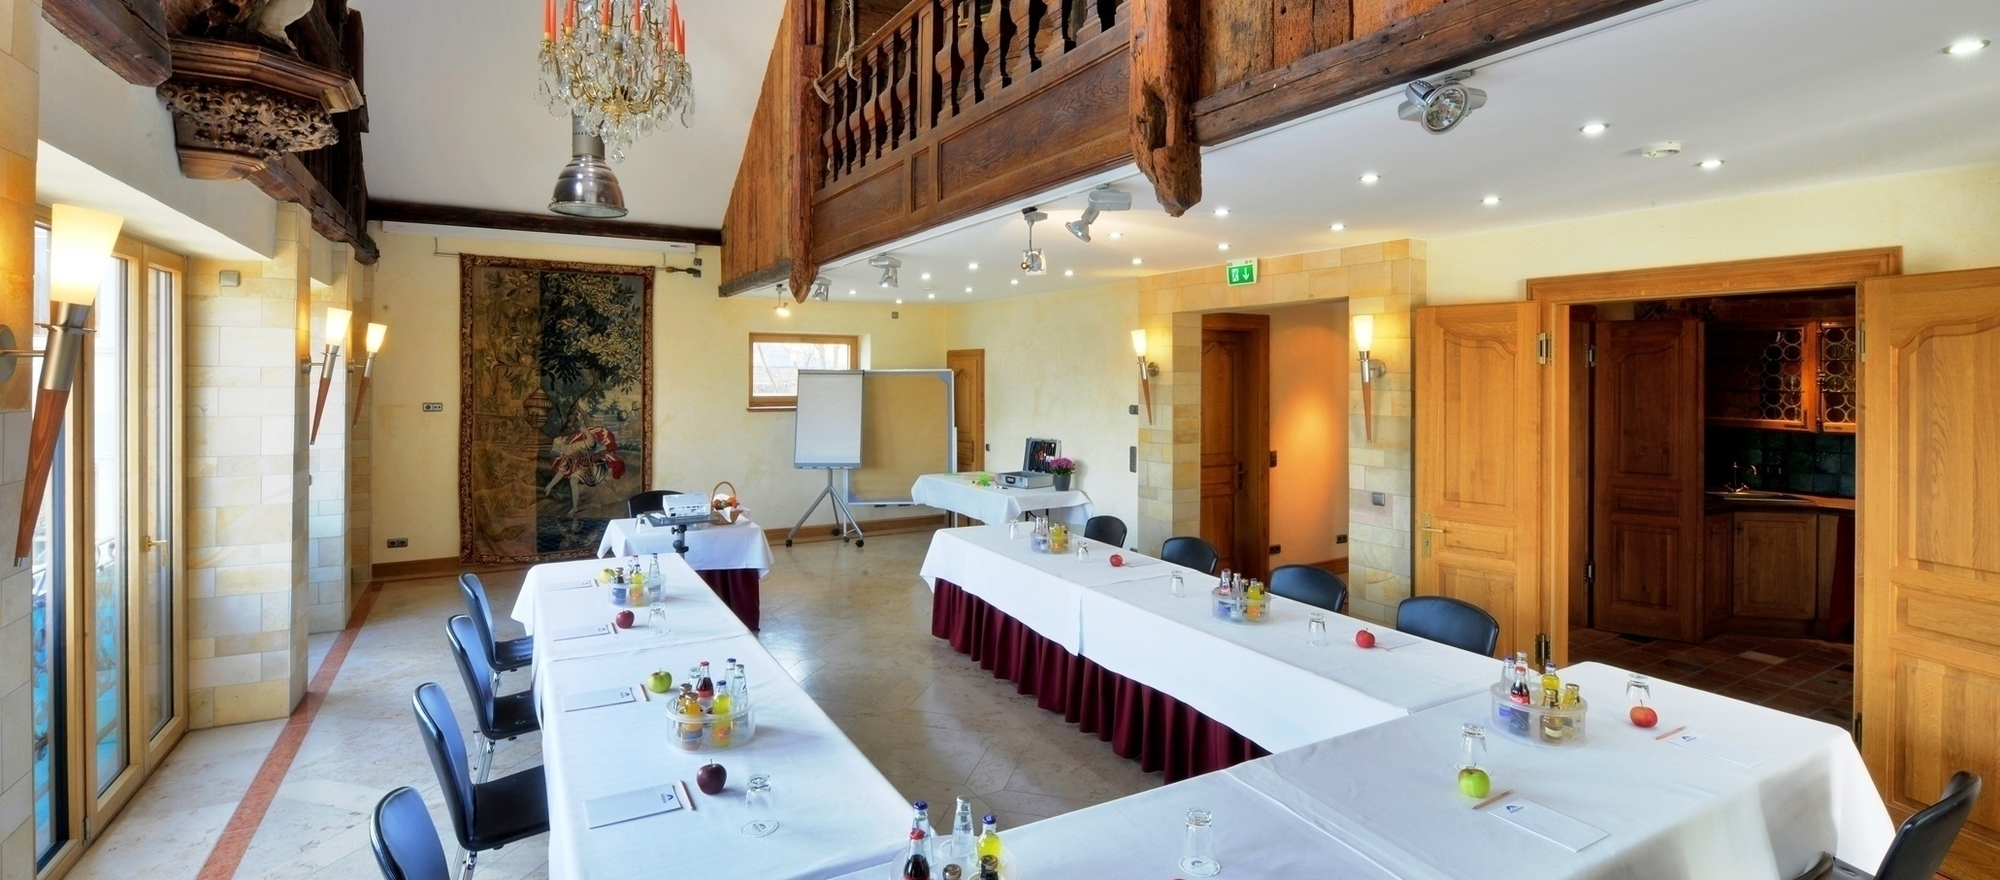 Excellent event location at the Ringhotel Alpenhof in Augsburg, Swabia